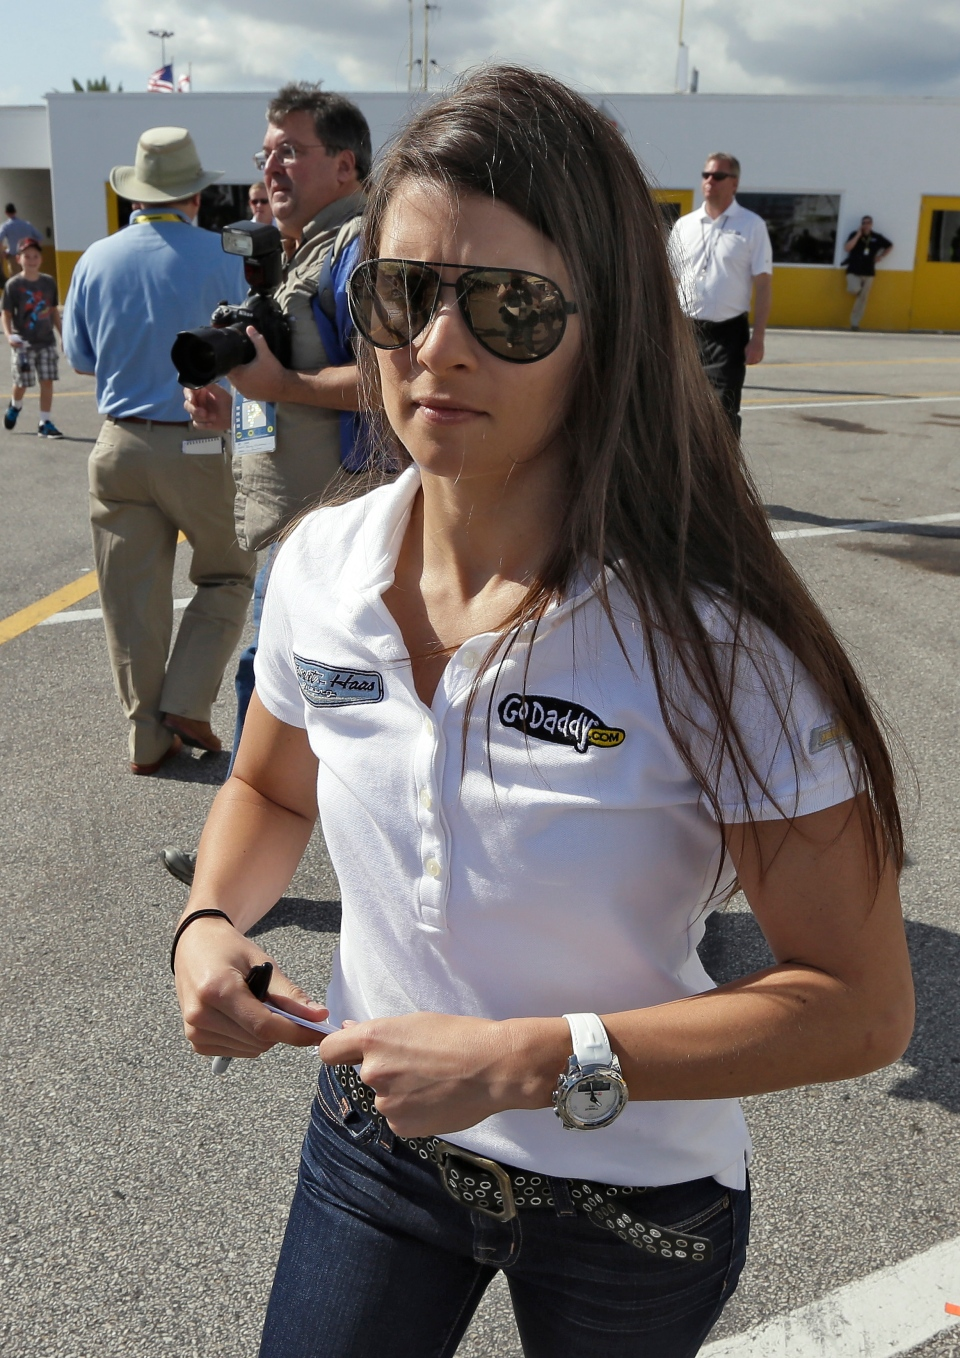 Daytona 500 pole sitter Danica Patrick walks through the garage area during a NASCAR Sprint Cup Series auto racing practice at the Daytona International Speedway in Daytona Beach, Fla., Saturday, Feb. 23, 2013. (AP / Chris O'Meara)